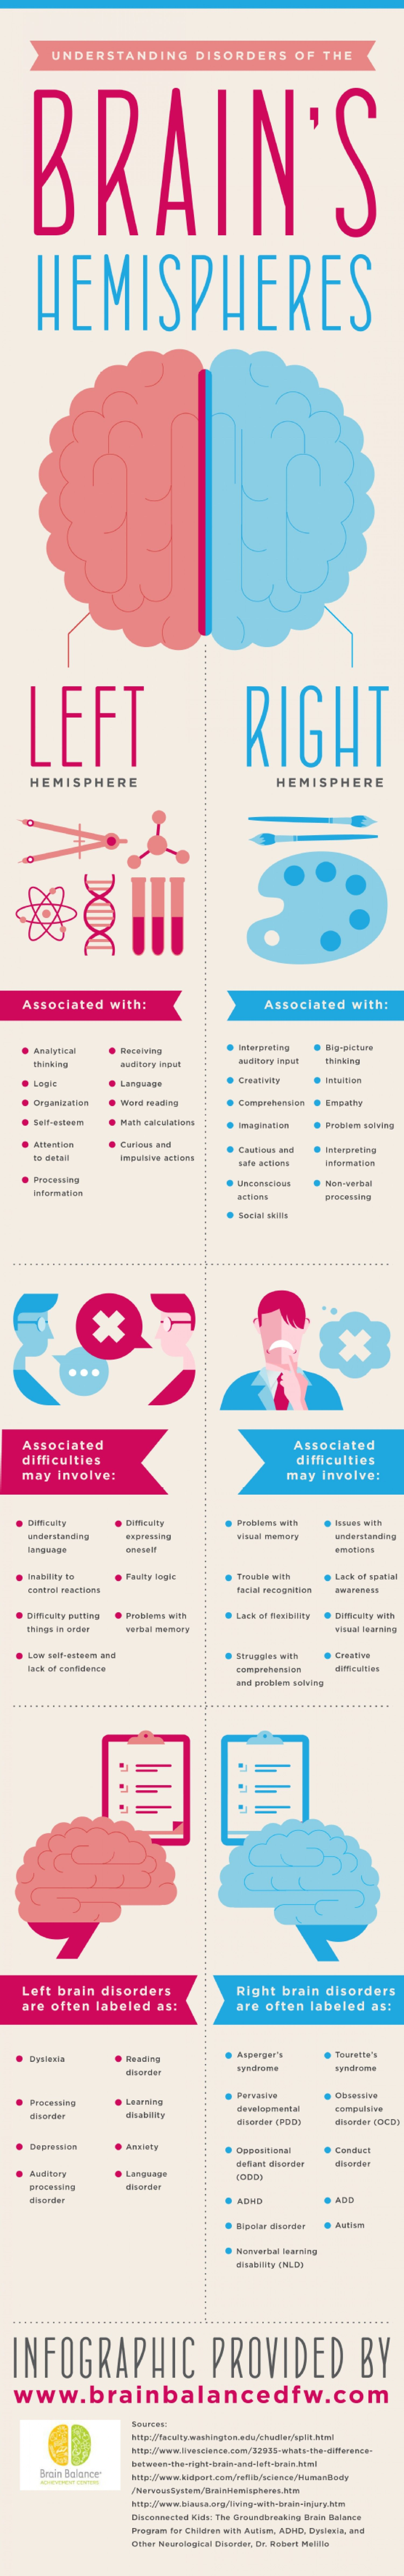 Understanding Disorders of the Brain's Hemispheres  Infographic